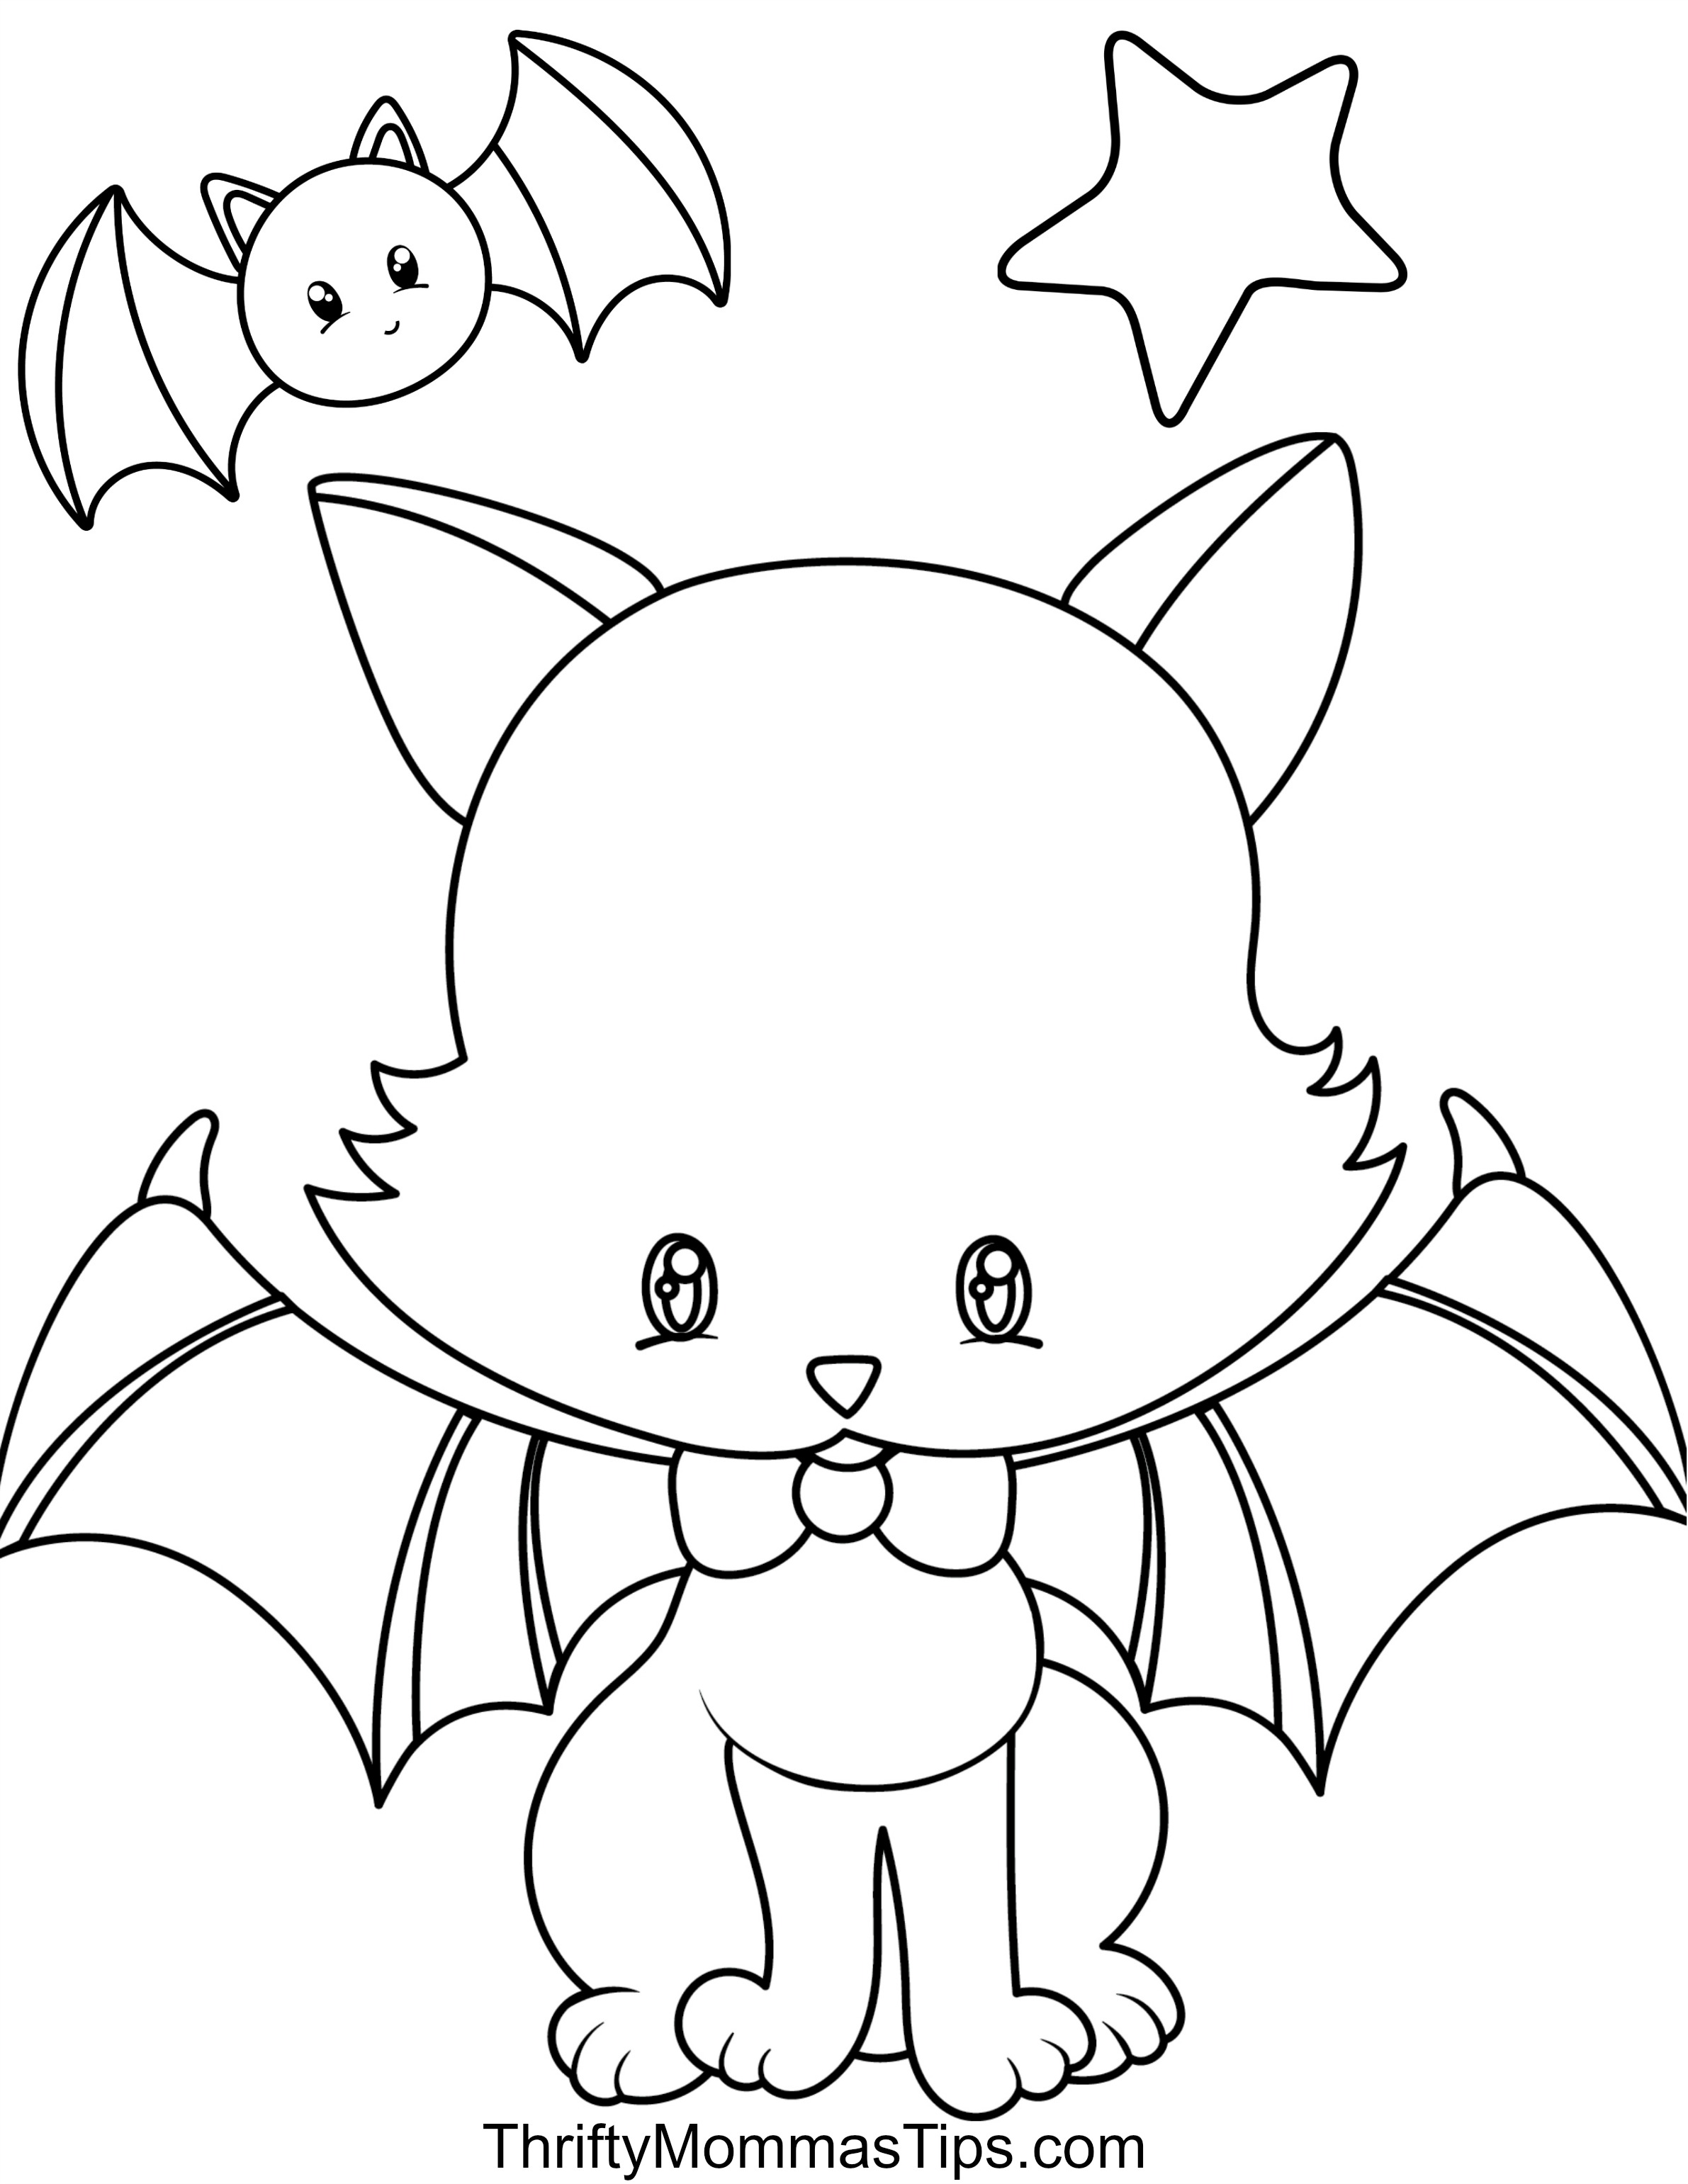 halloween cat coloring pages halloween cats colouring book 9 pages thrifty mommas tips coloring halloween cat pages